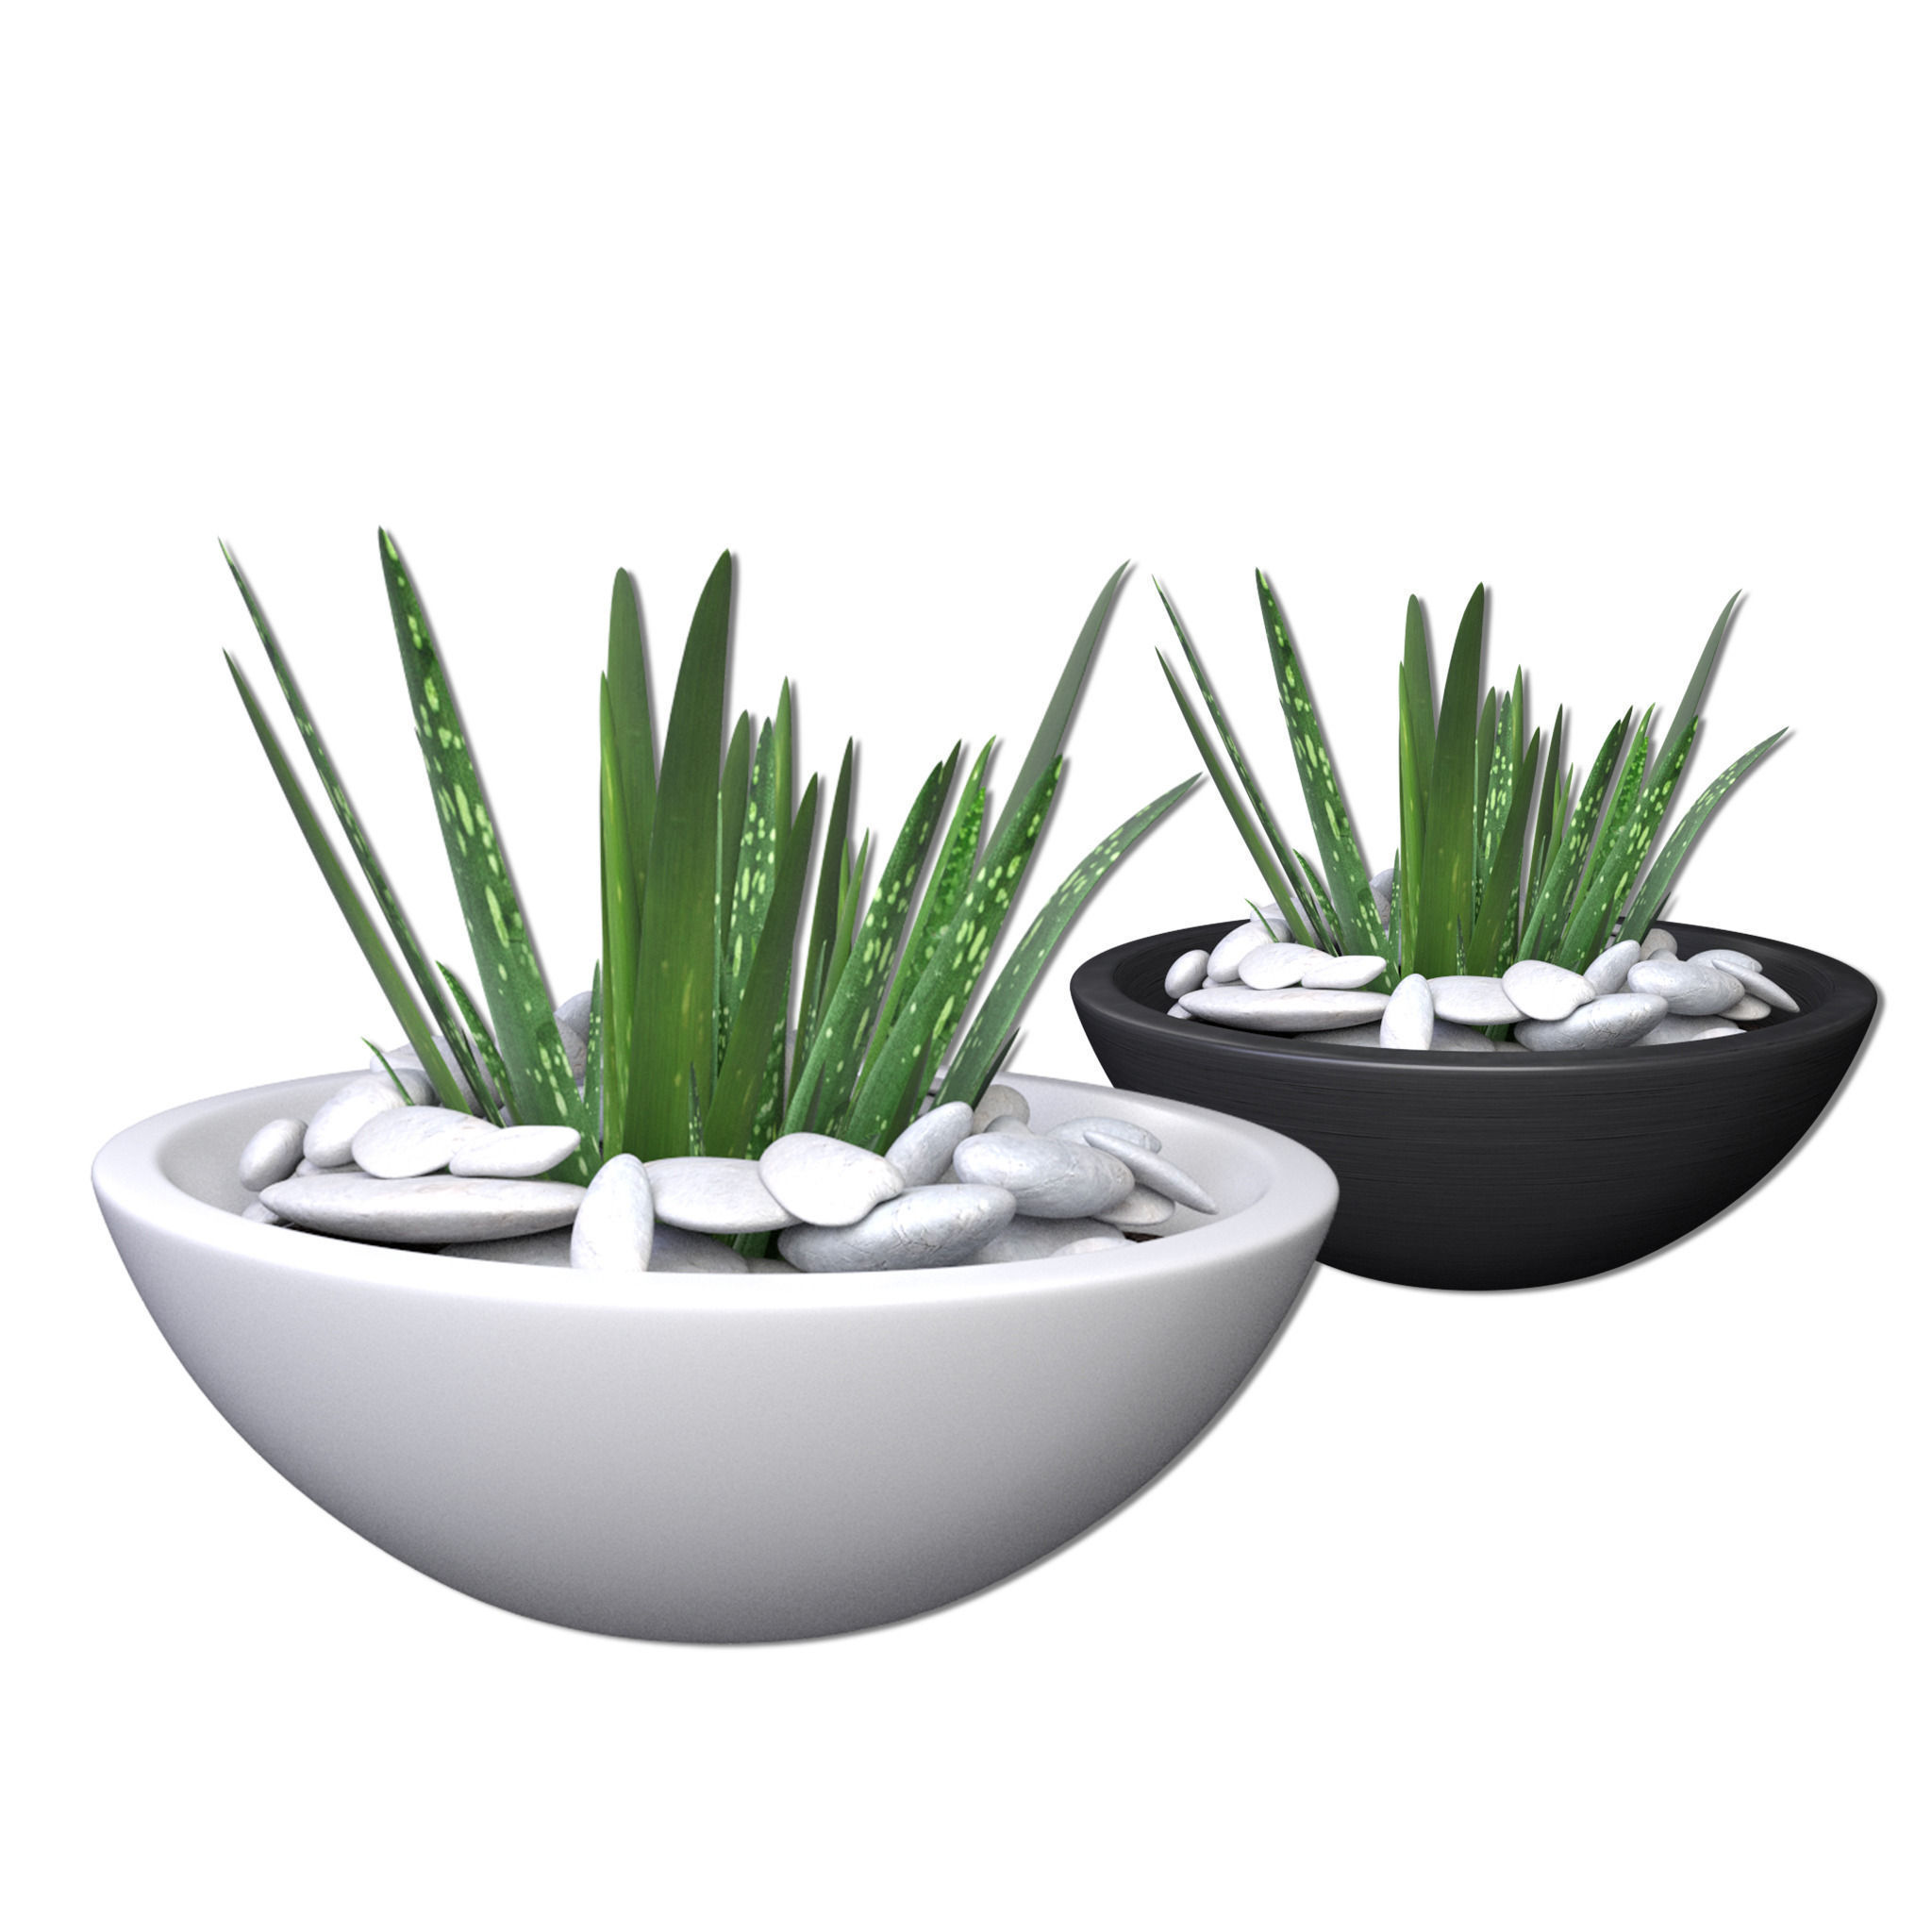 3d model aloe vera - potted plant 2 | cgtrader